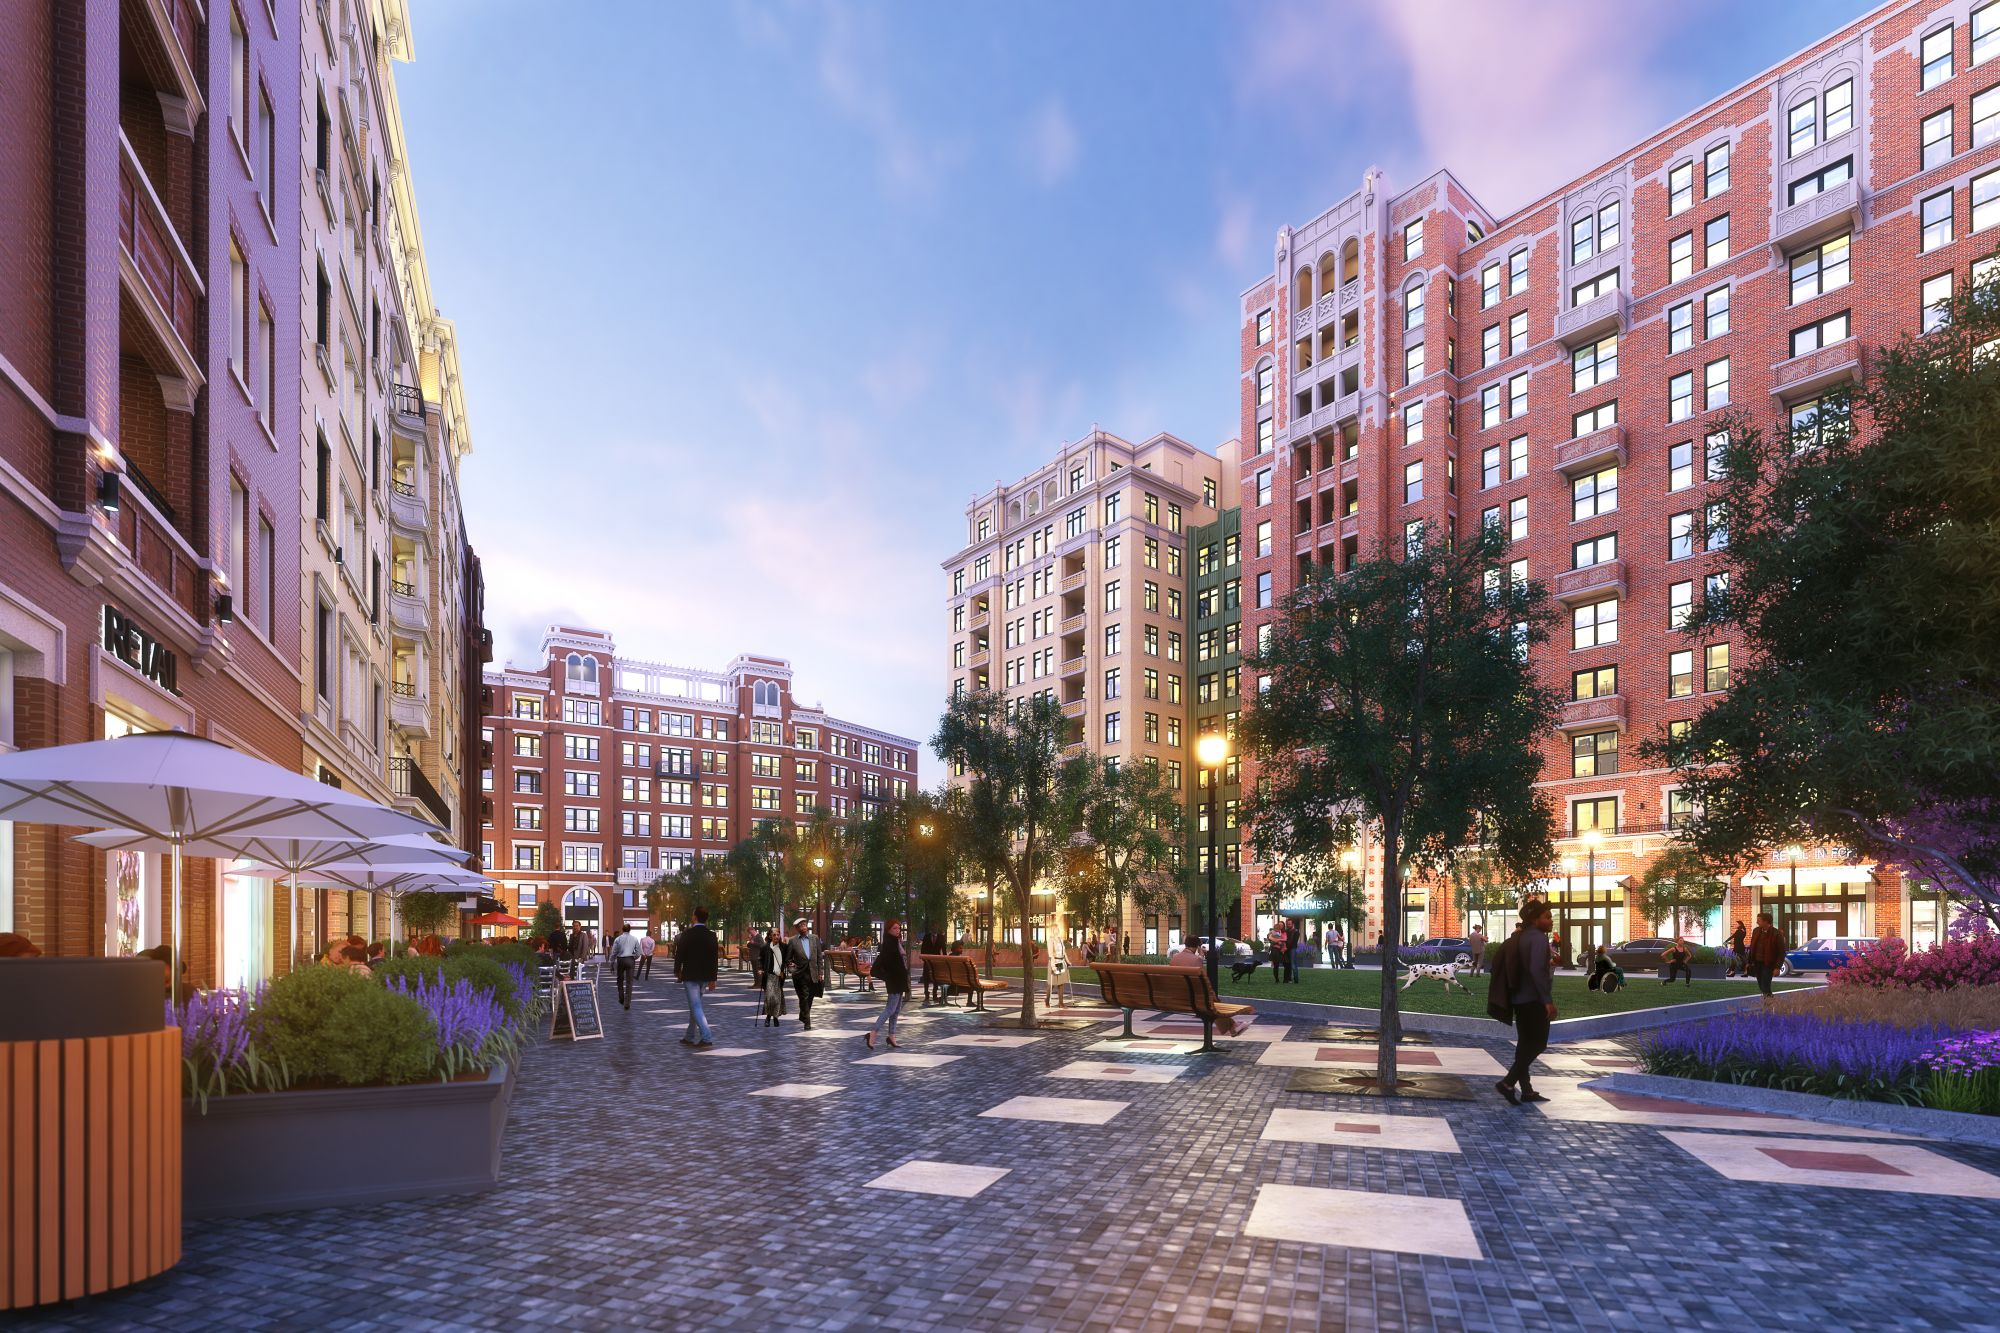 Ritz-Carlton to Develop 65 Condominiums in Chevy Chase